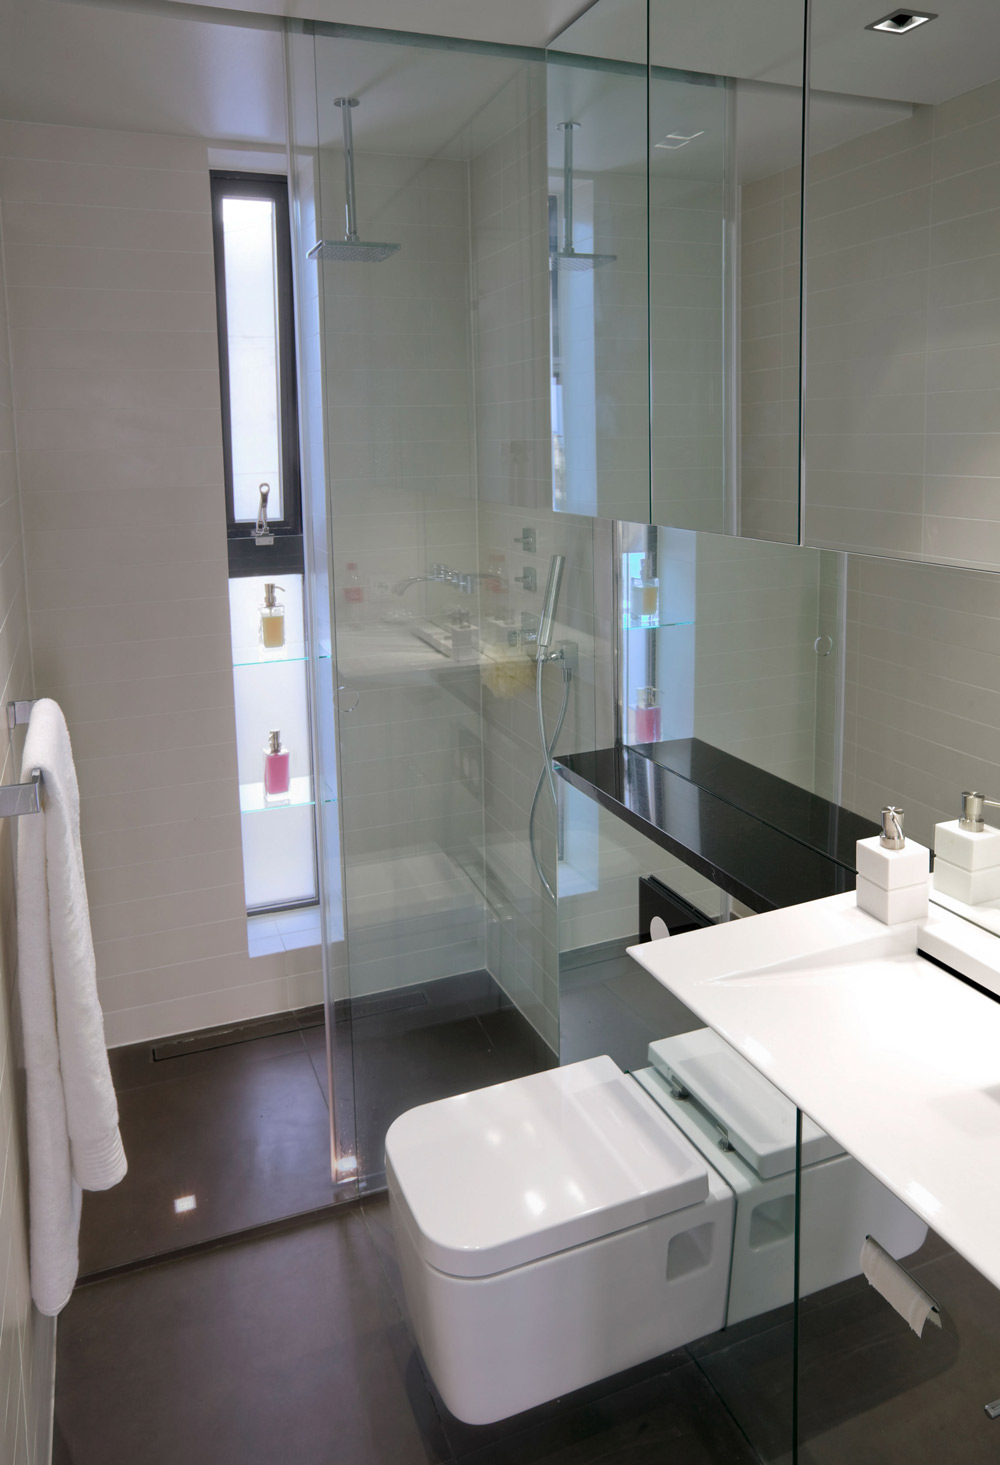 Bathroom, Glass Shower, Modern Apartment in Reykjavik, Iceland